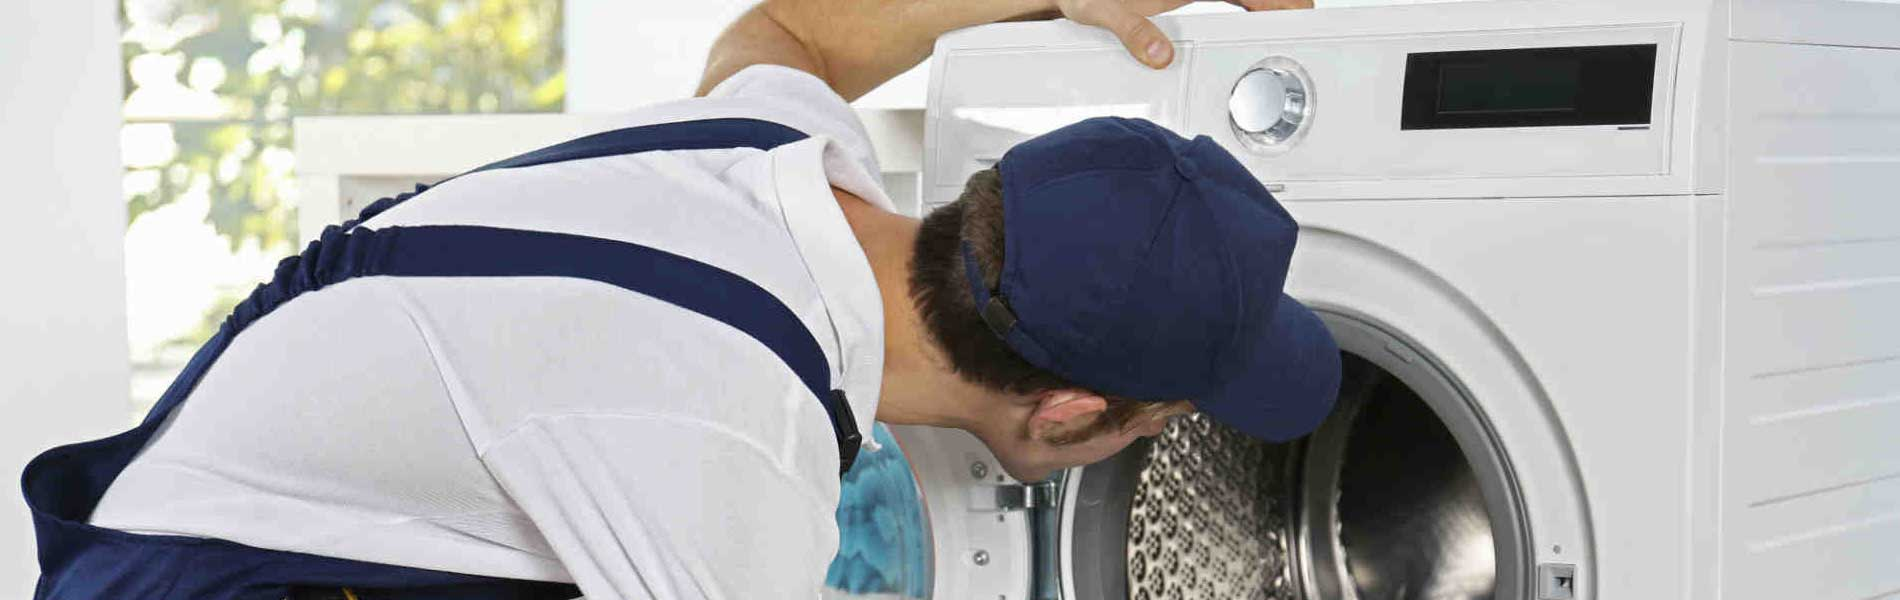 Haier Washing Machine Repair in Anna Nagar West